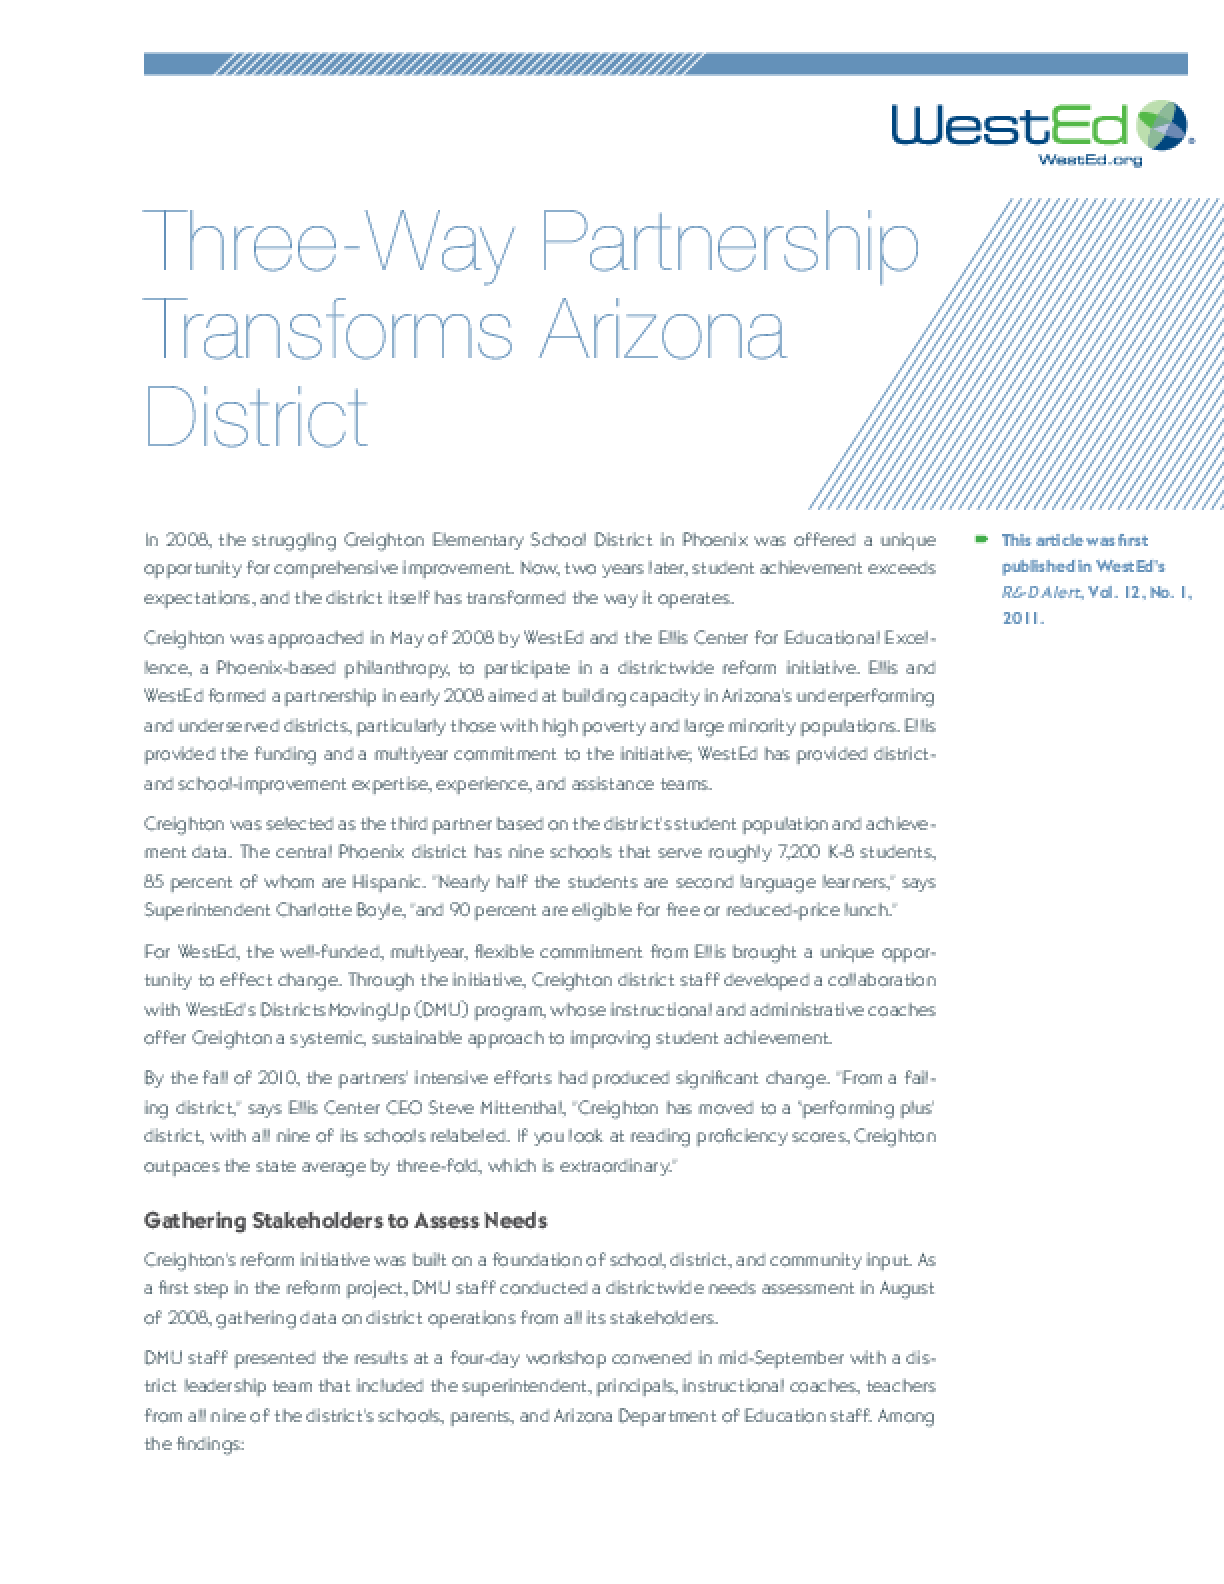 Three-Way Partnership Transforms Arizona District